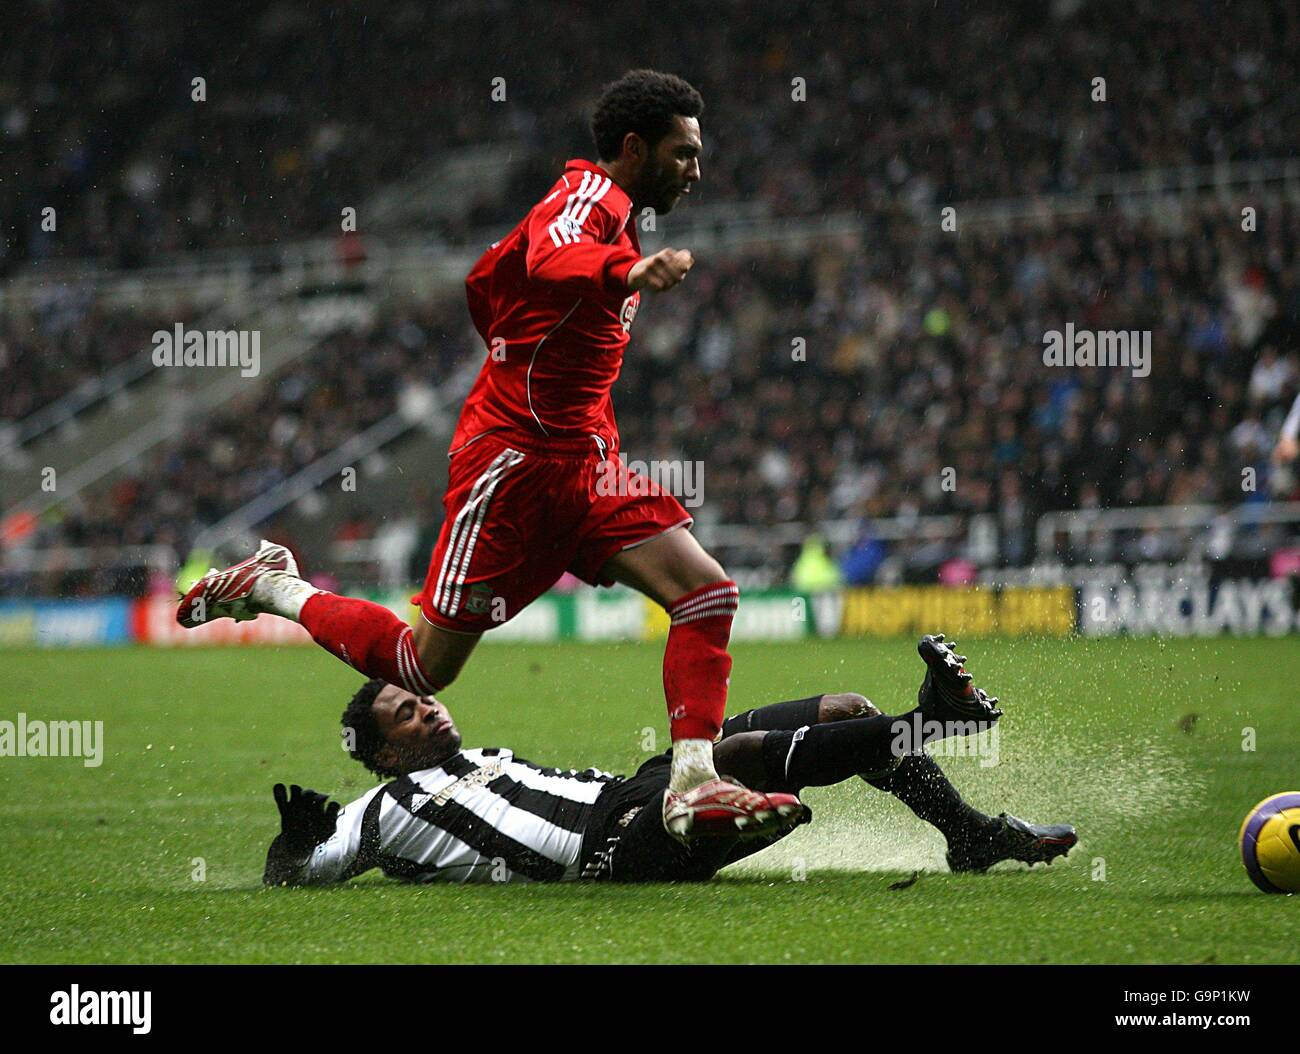 Soccer - FA Barclays Premiership - Newcastle United v Liverpool - St James Park - Stock Image